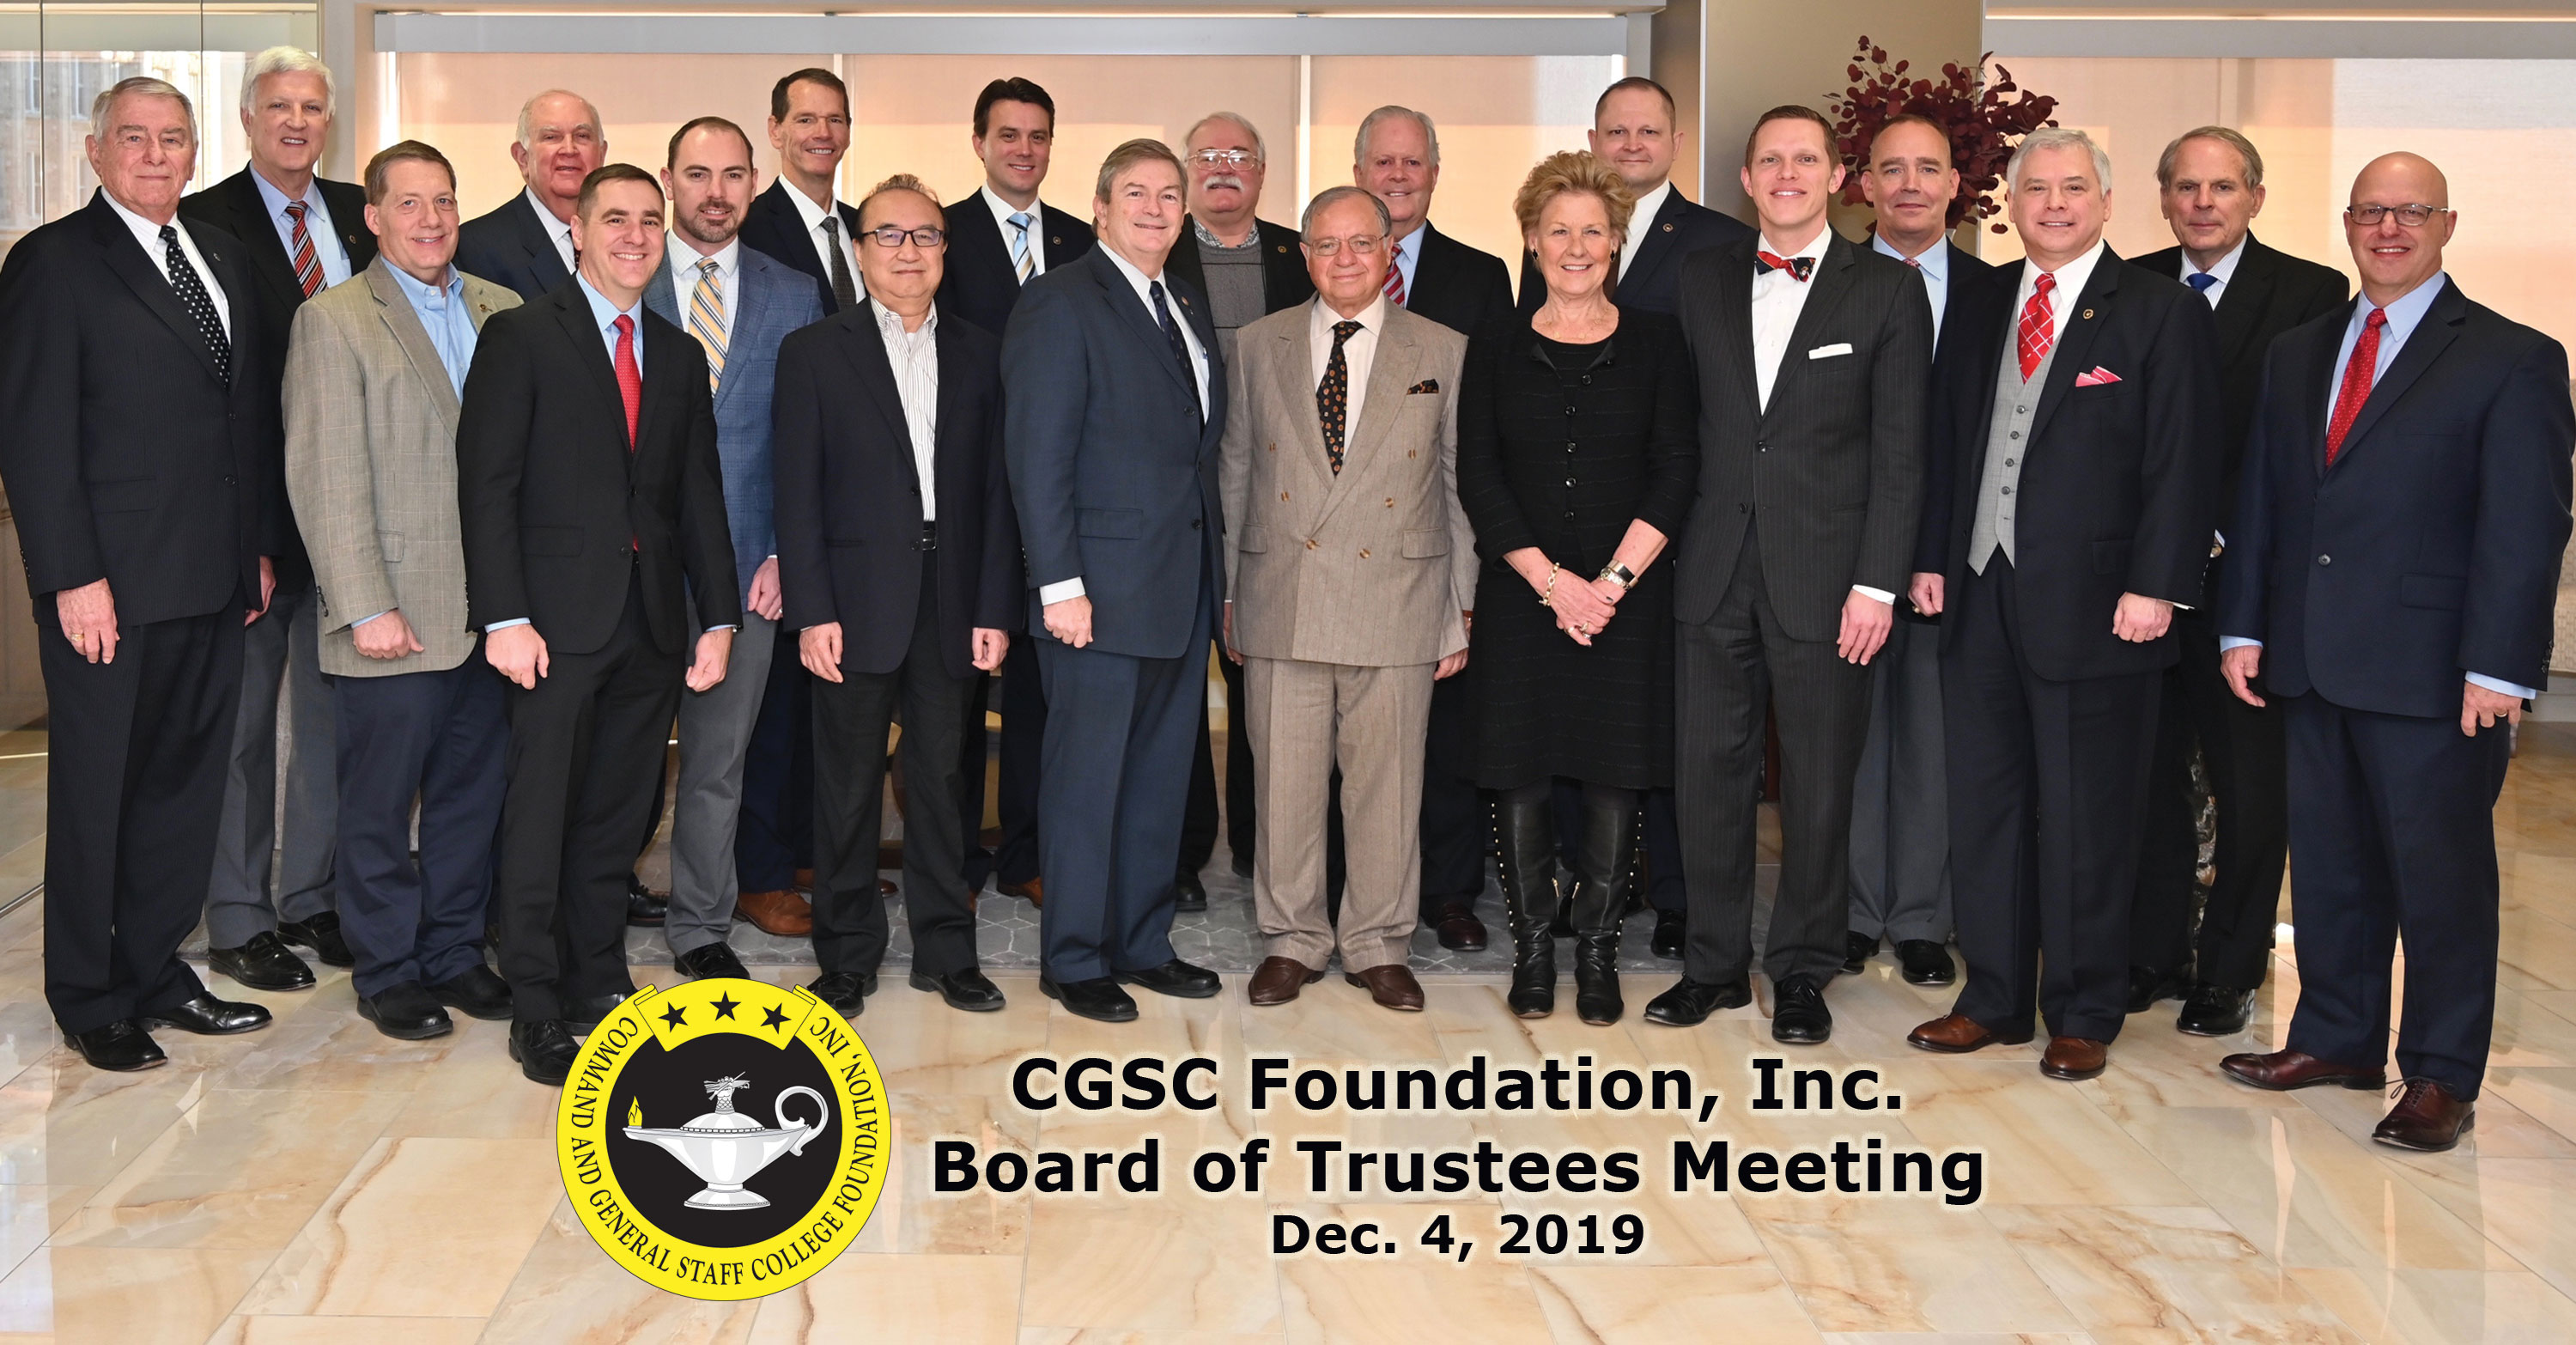 Photo of the CGSC Foundation board of trustees on Dec. 4, 2019 during the quarterly board meeting.